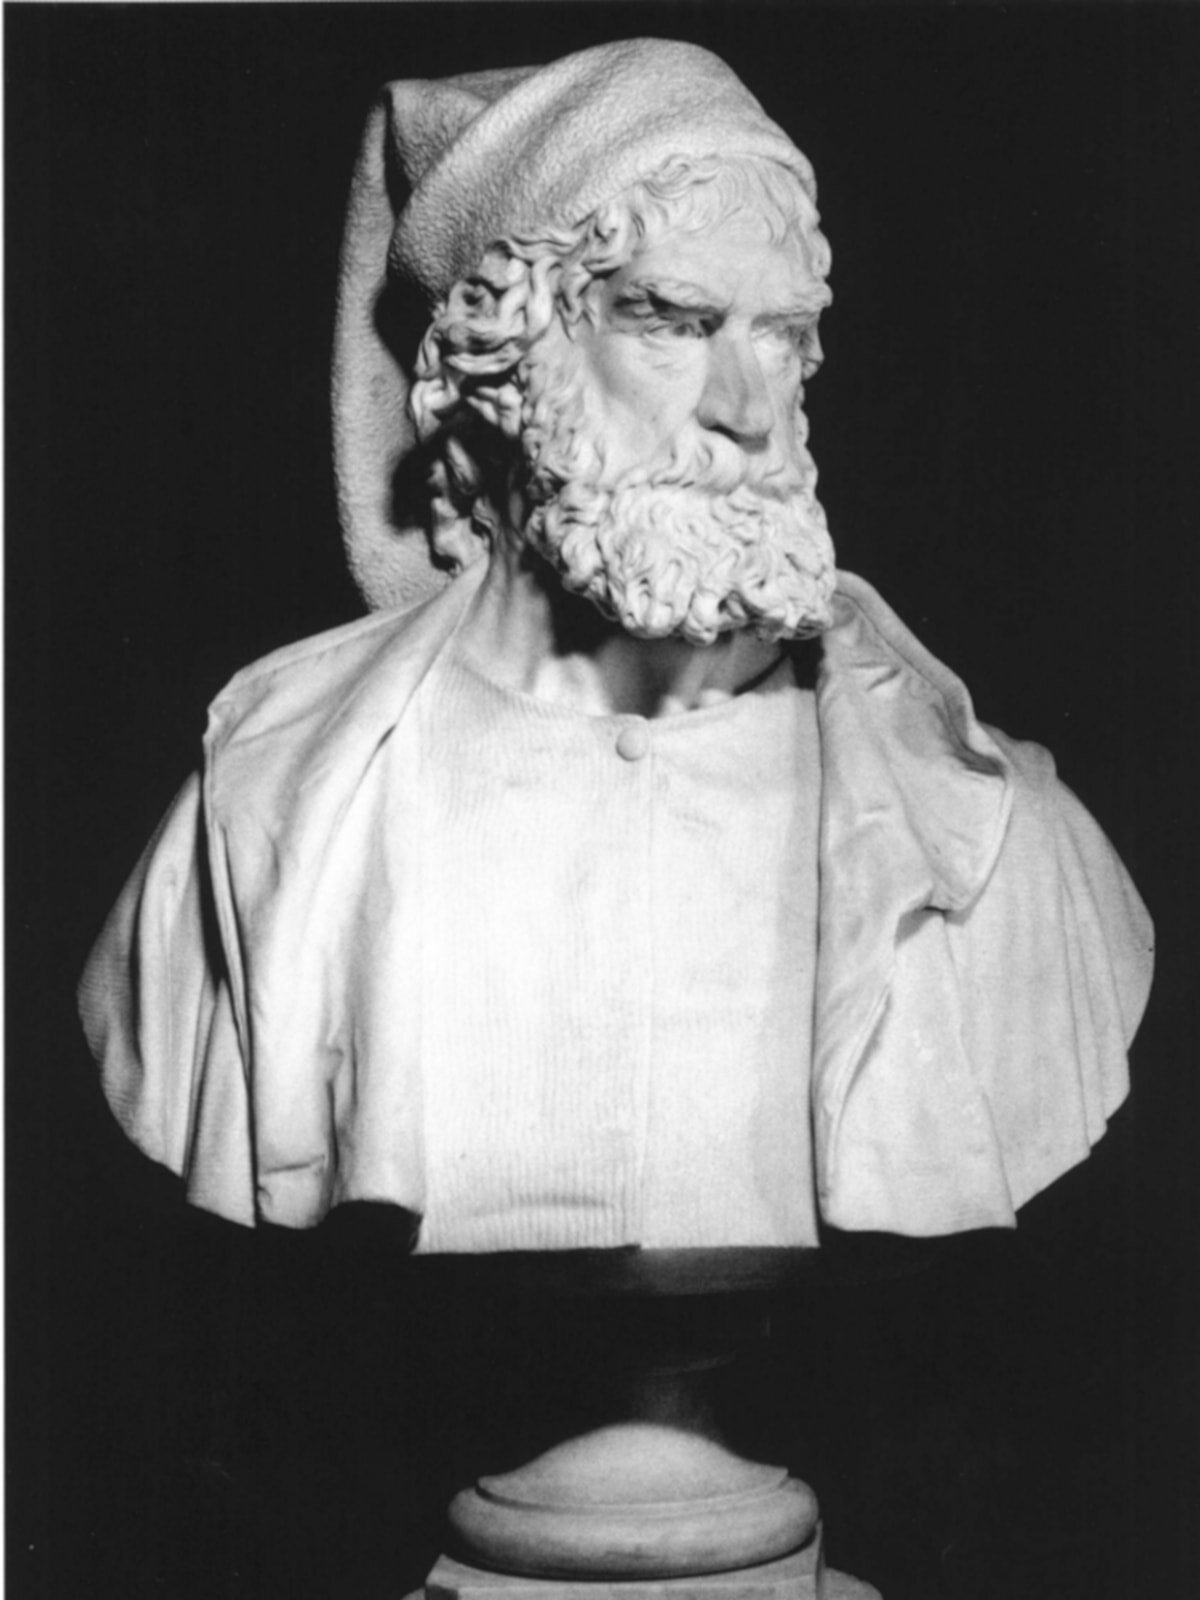 John Cabot was another of the famous adventurers from Italy.